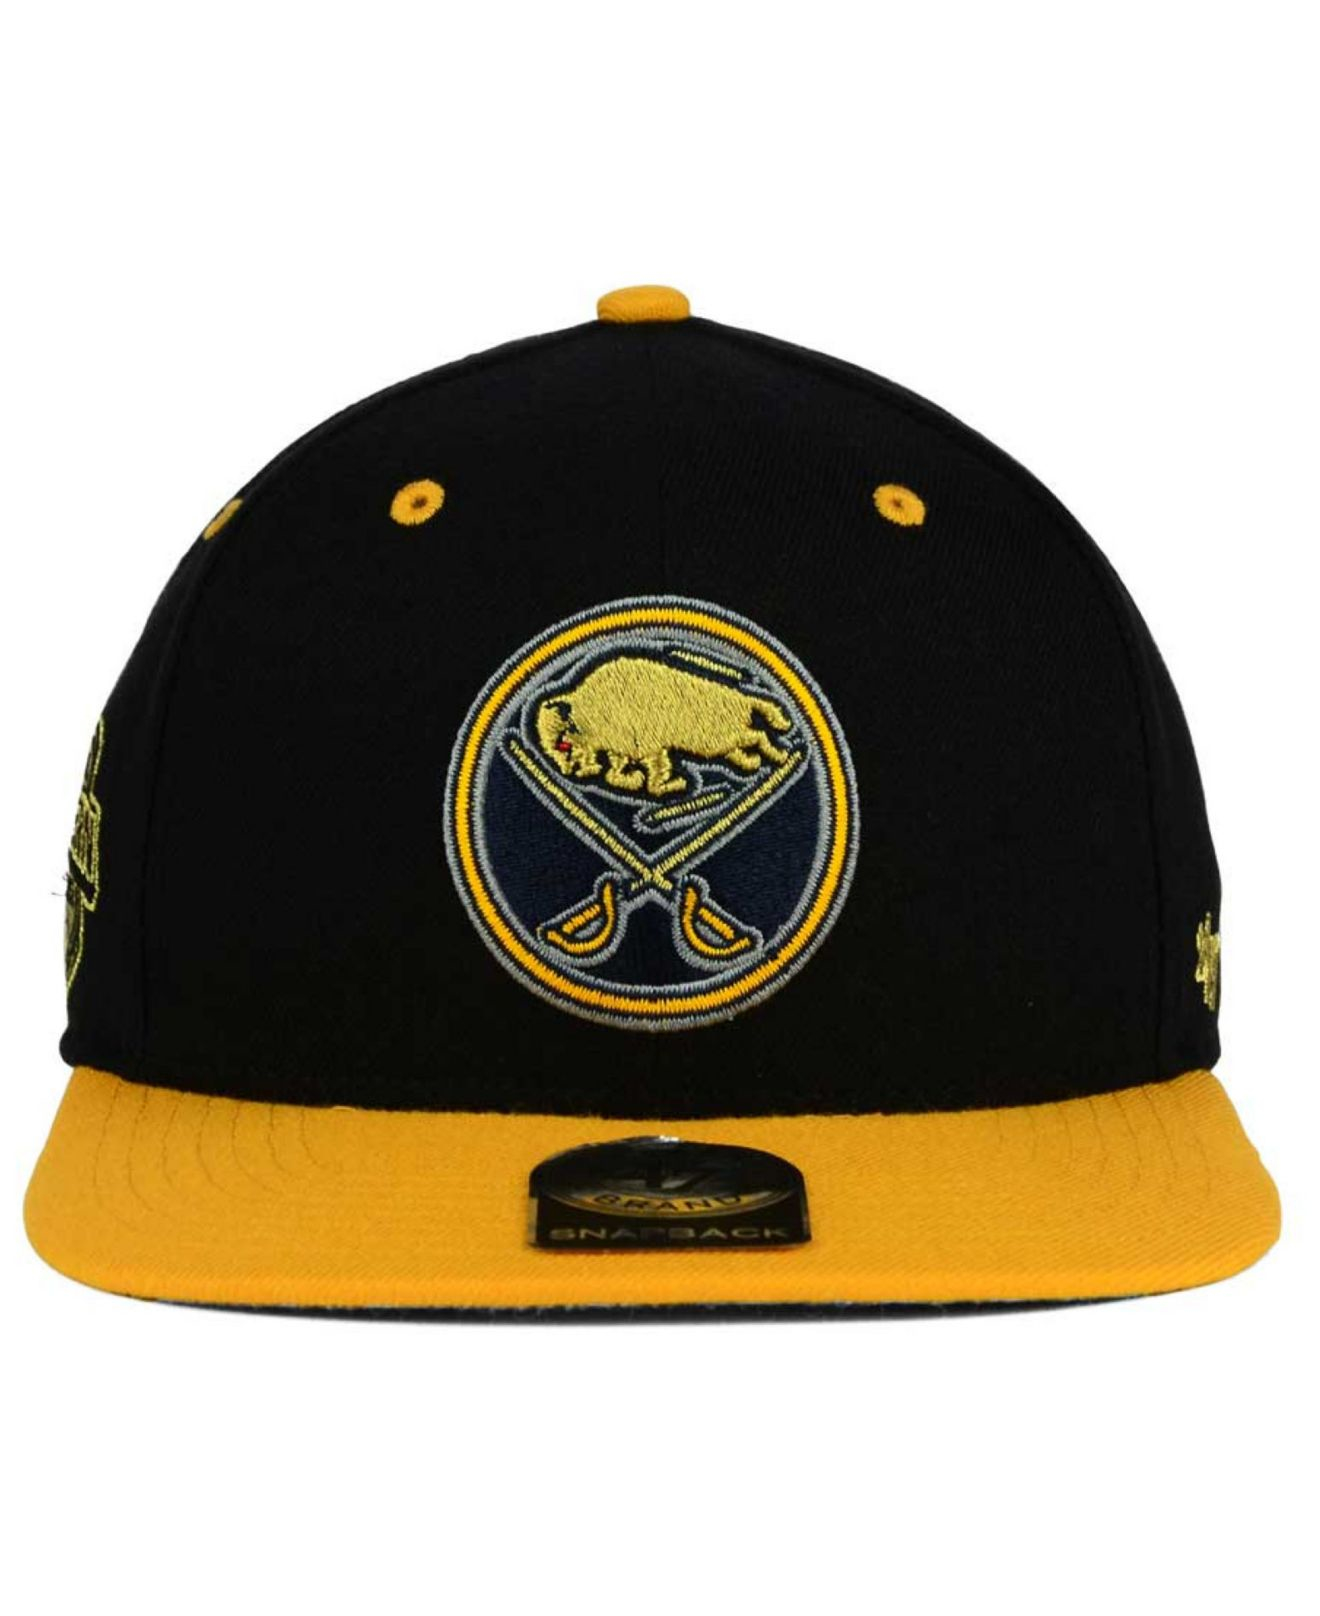 cheaper 95fa0 6123d Lyst - 47 Brand Buffalo Sabres Gold Rush Snapback Cap in Black for Men